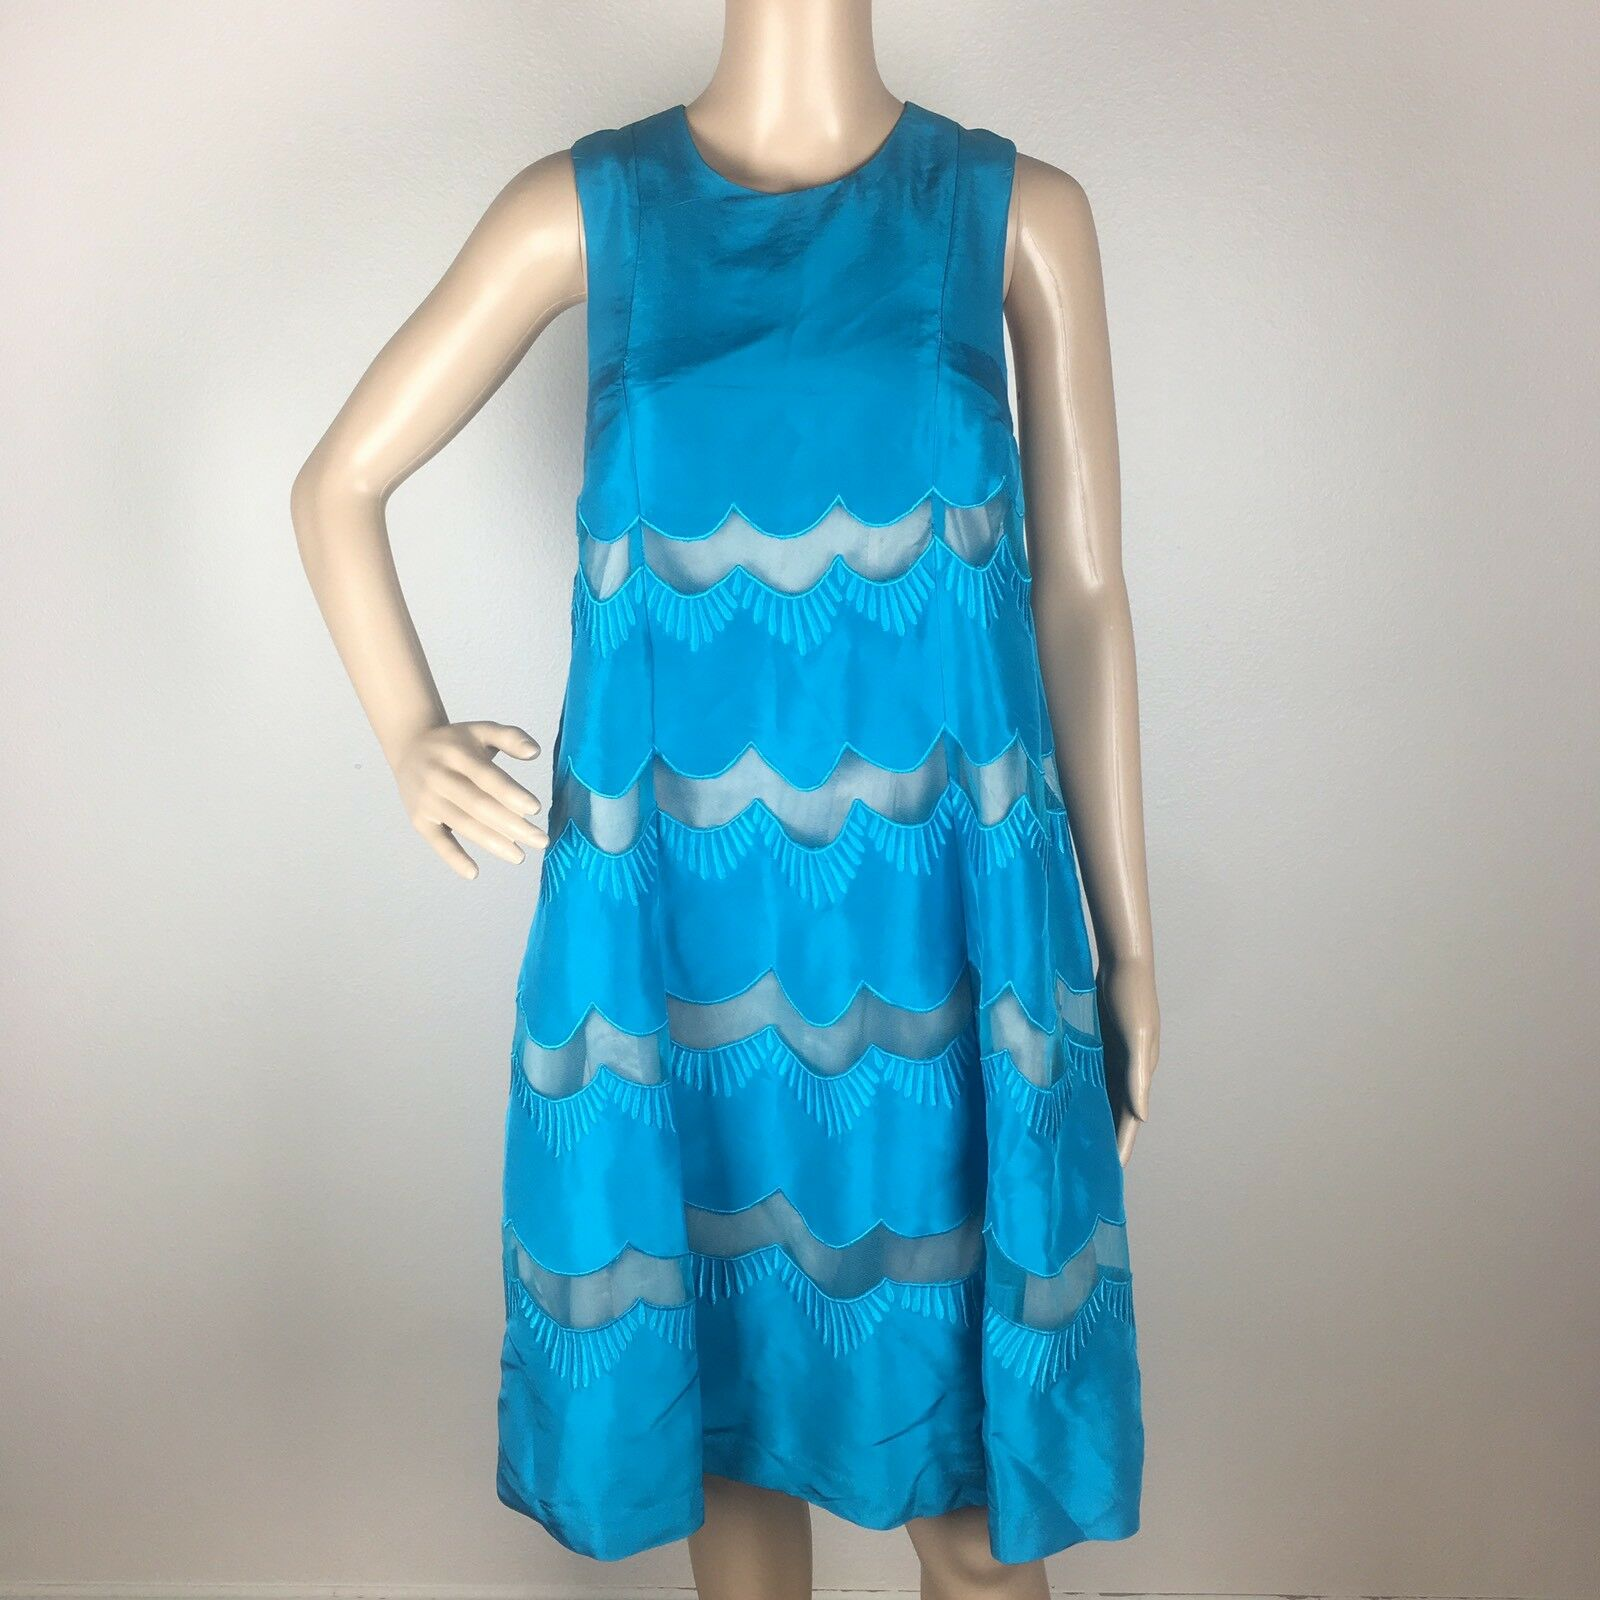 Tracy Reese 100% Silk Turquoise Scalloped Cocktail Dress Evening Party Größe 4